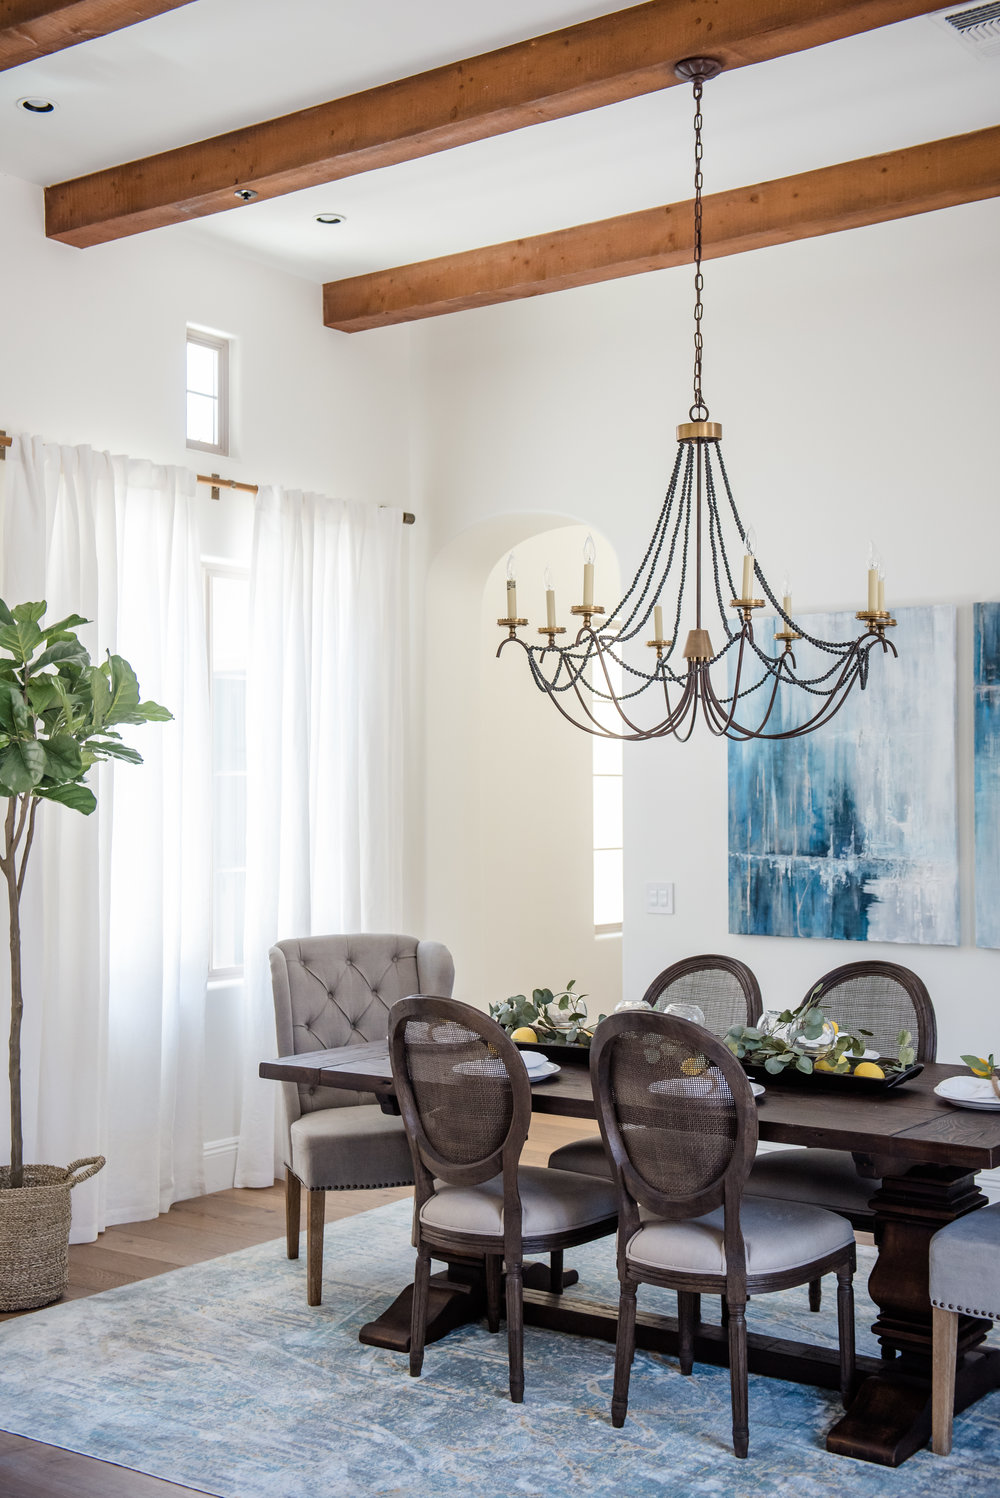 13+Art+Blue+Chandelier+Tree+BohoAccents+DarkWoodTable.jpg